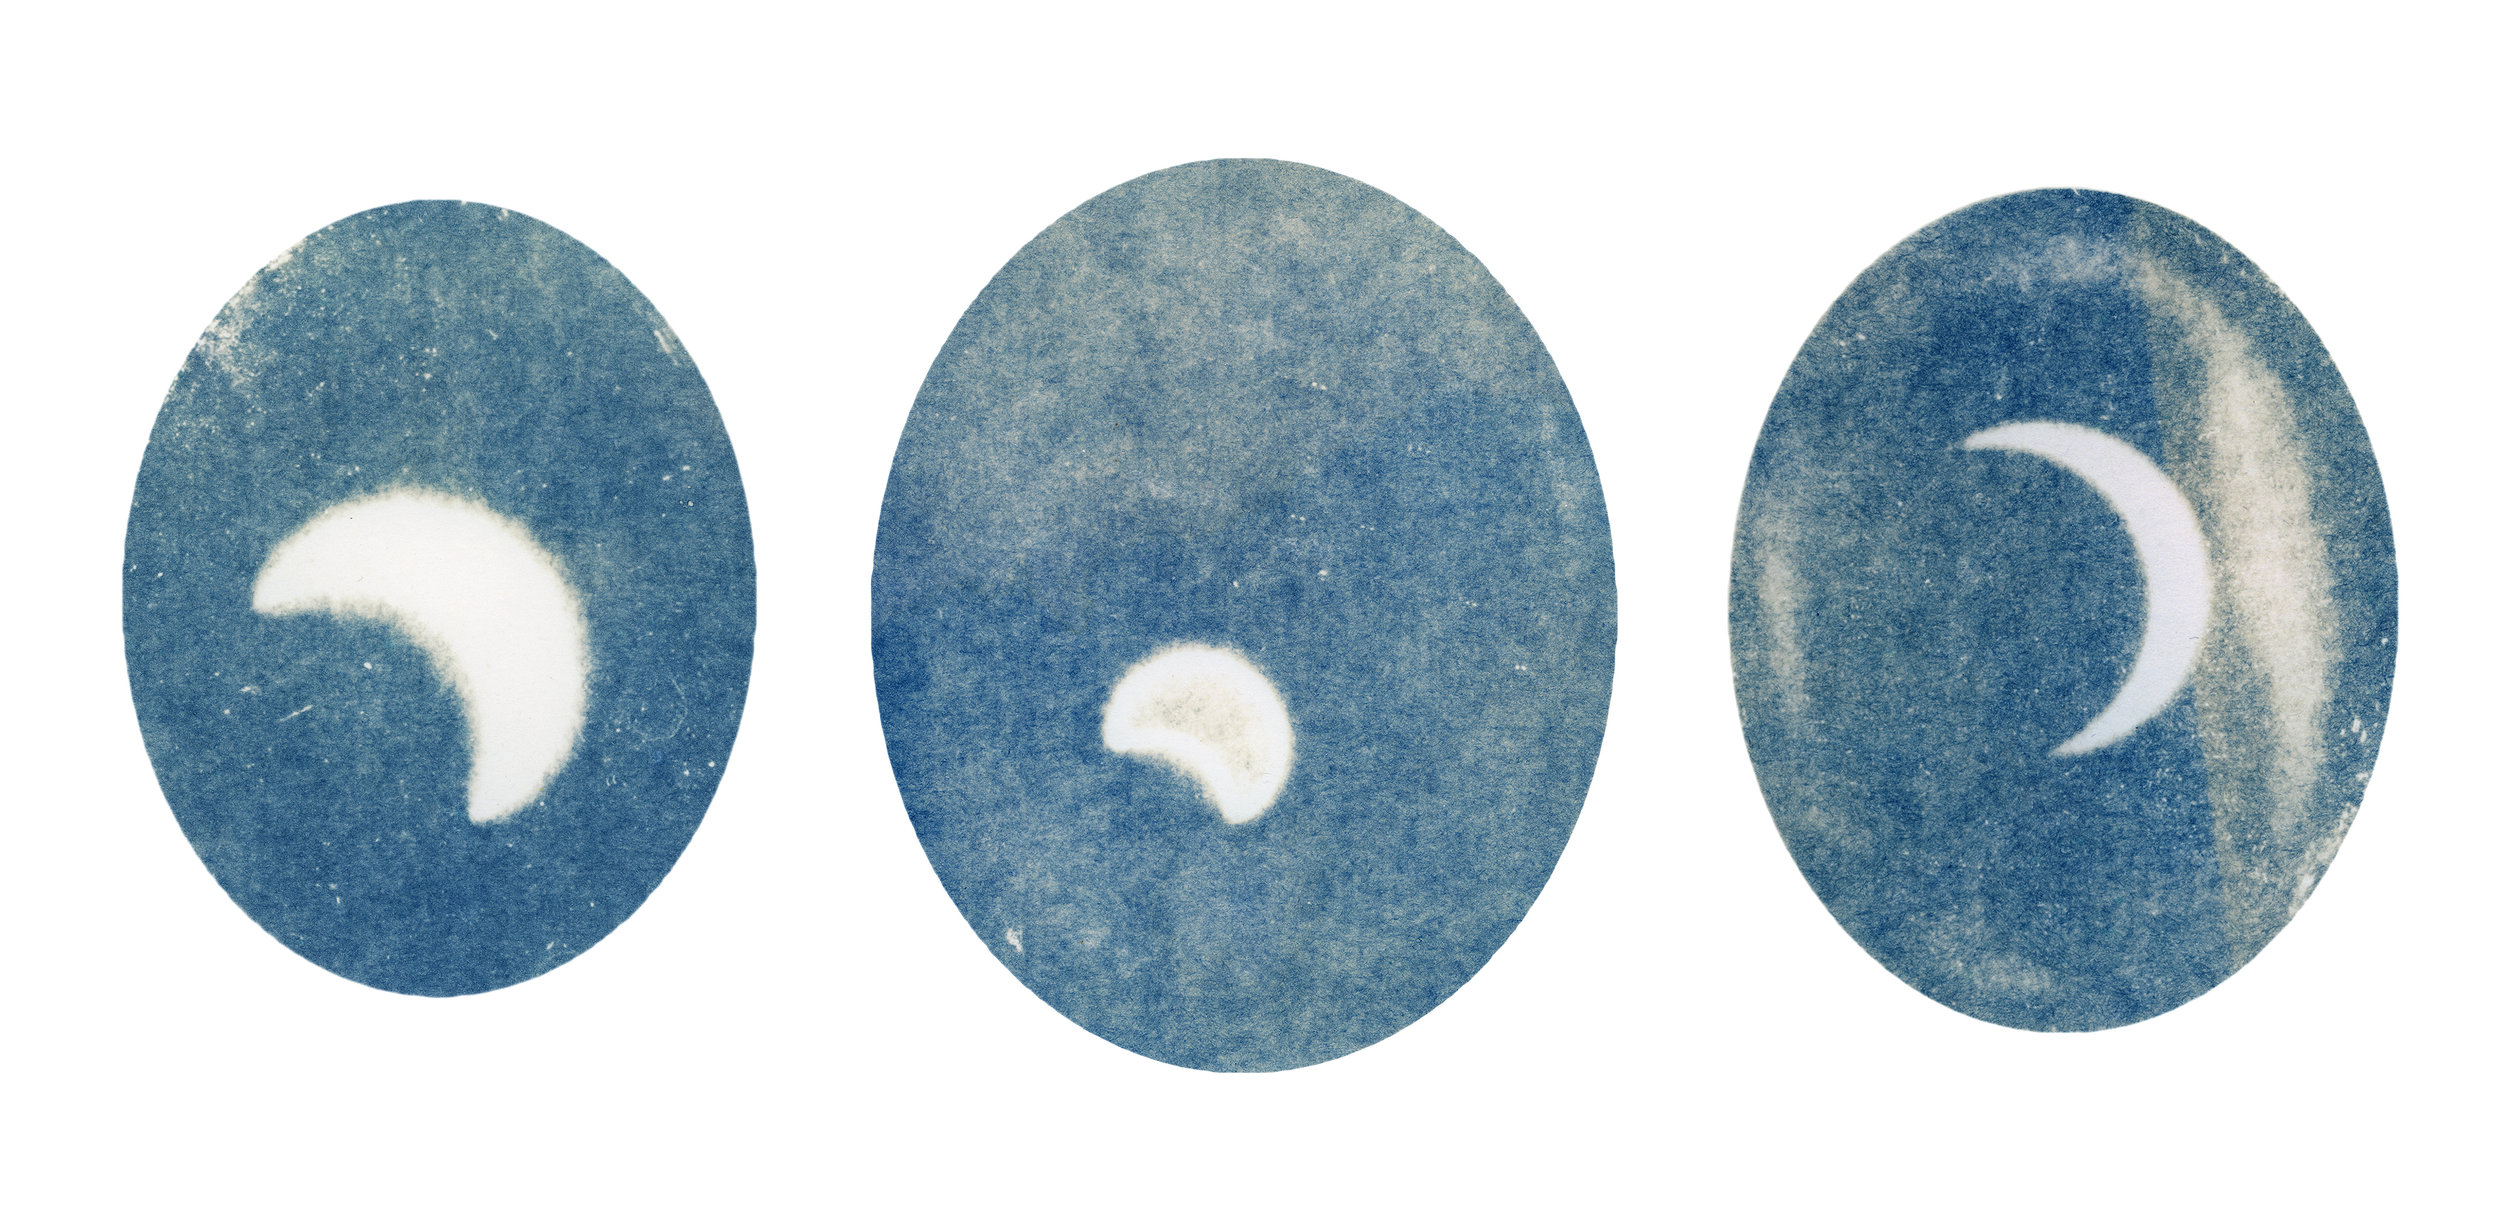 A triplet of the final cyanotypes.